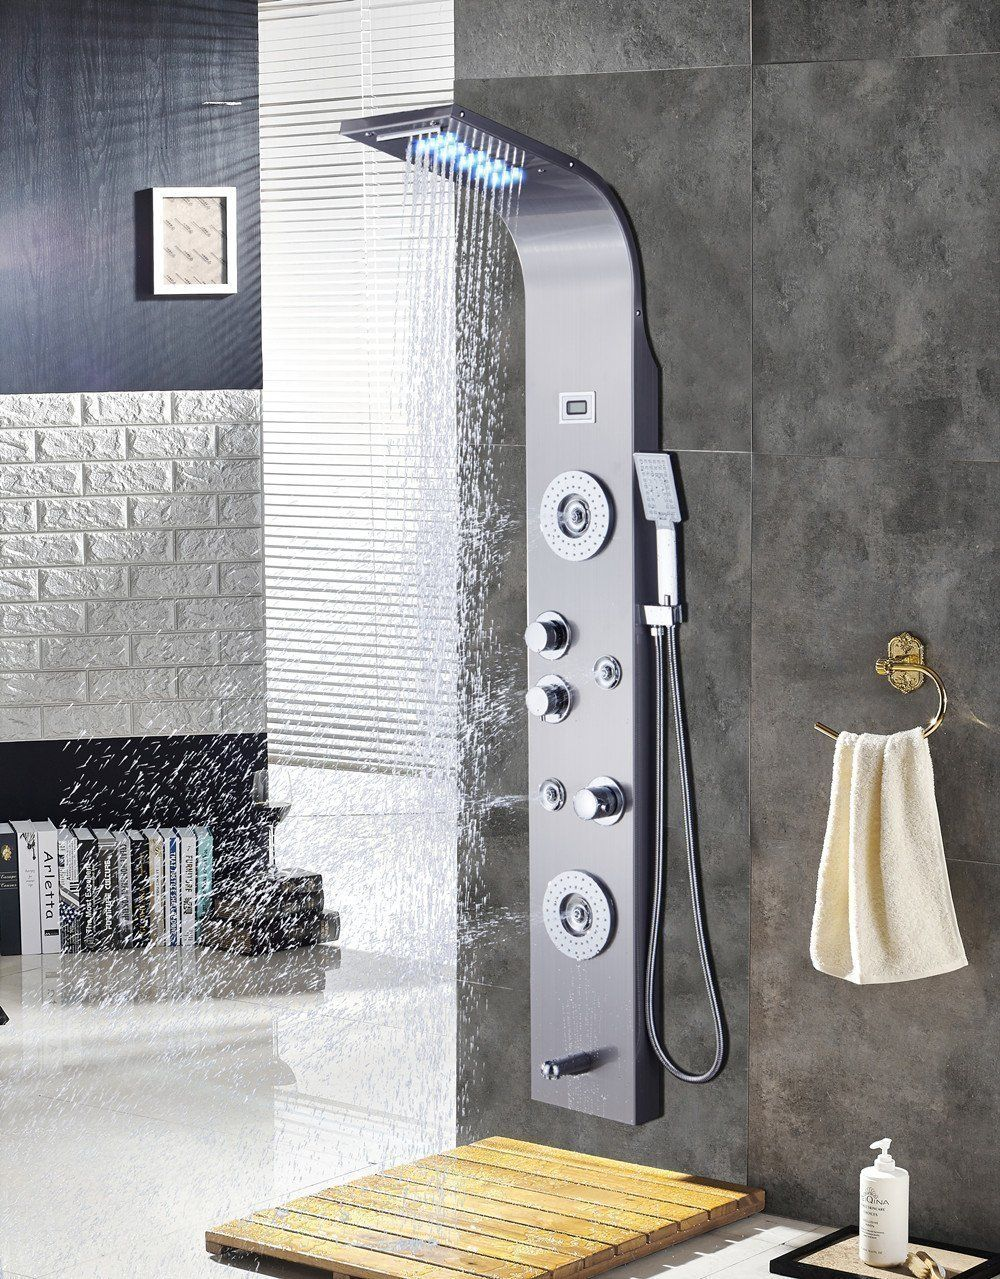 Ello Allo Stainless Steel Shower Panel Tower System Led Rainfall